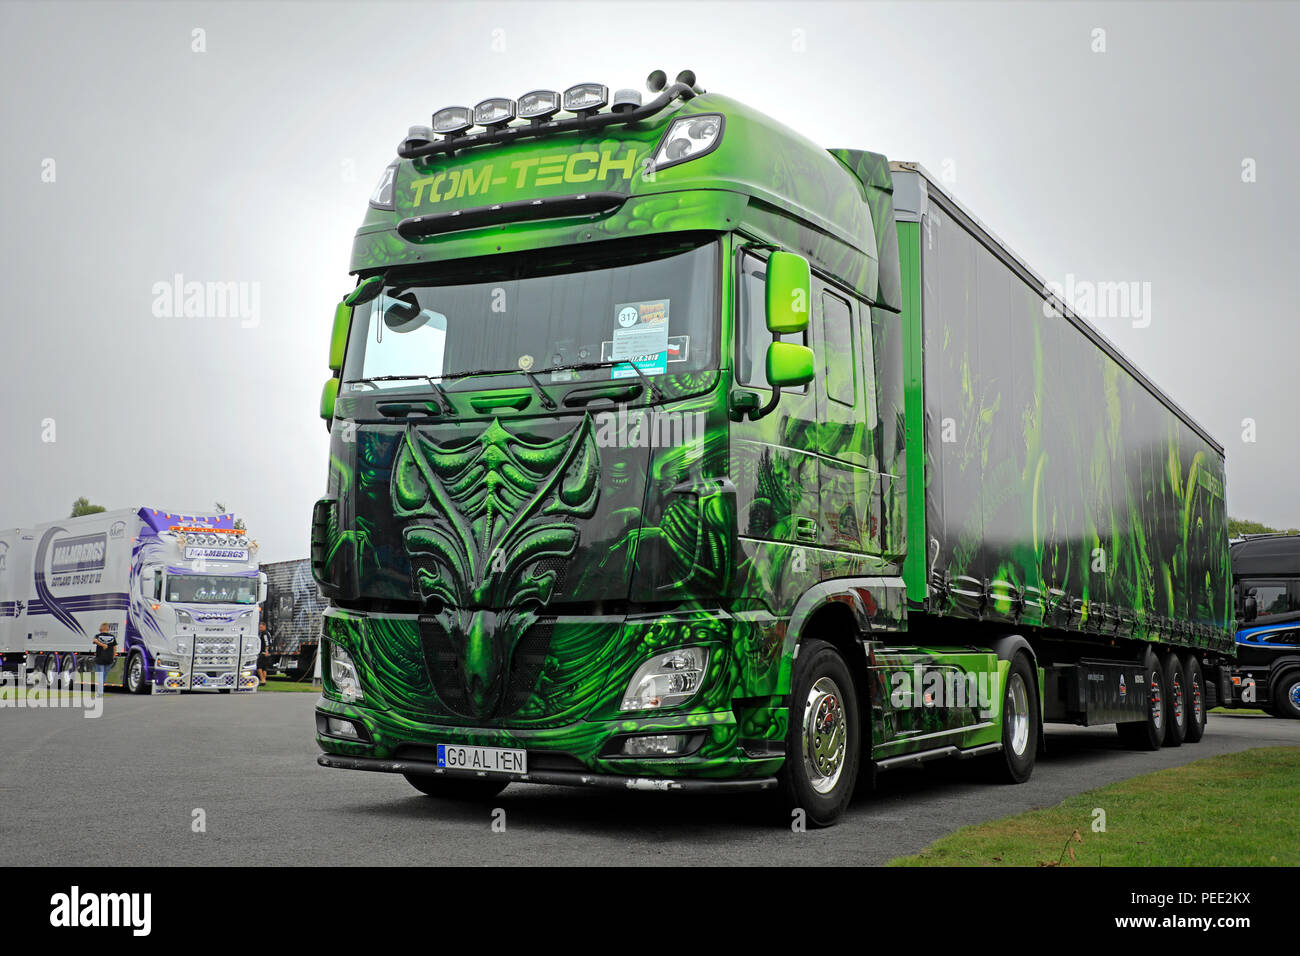 daf trucks stock photos daf trucks stock images alamy. Black Bedroom Furniture Sets. Home Design Ideas